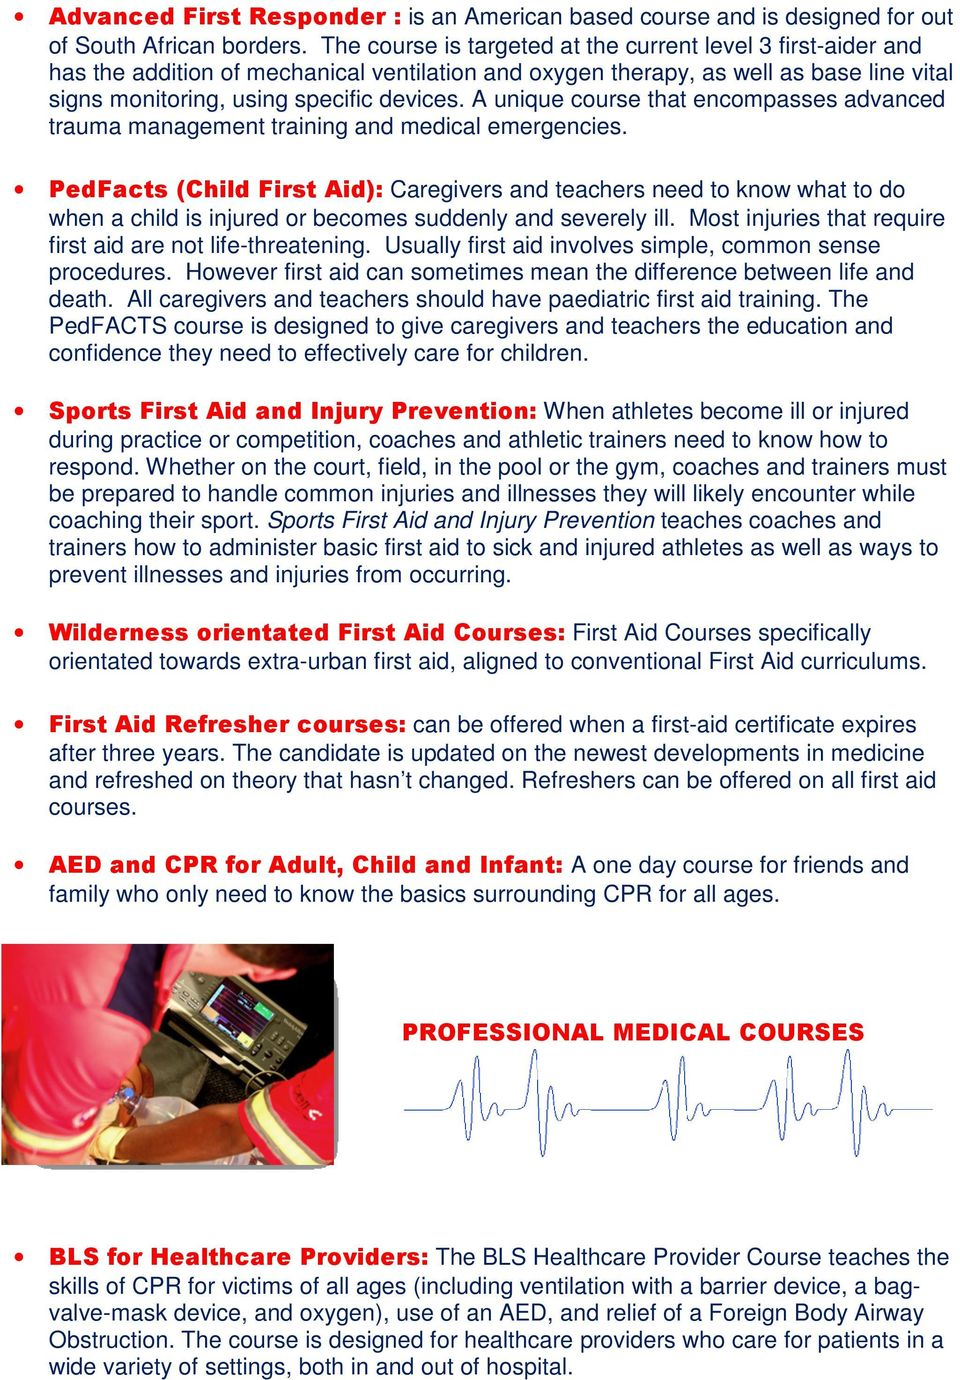 Er24 Training Academy Prospectus Pdf Micro Ventilator Responder A Unique Course That Encompasses Advanced Trauma Management And Medical Emergencies